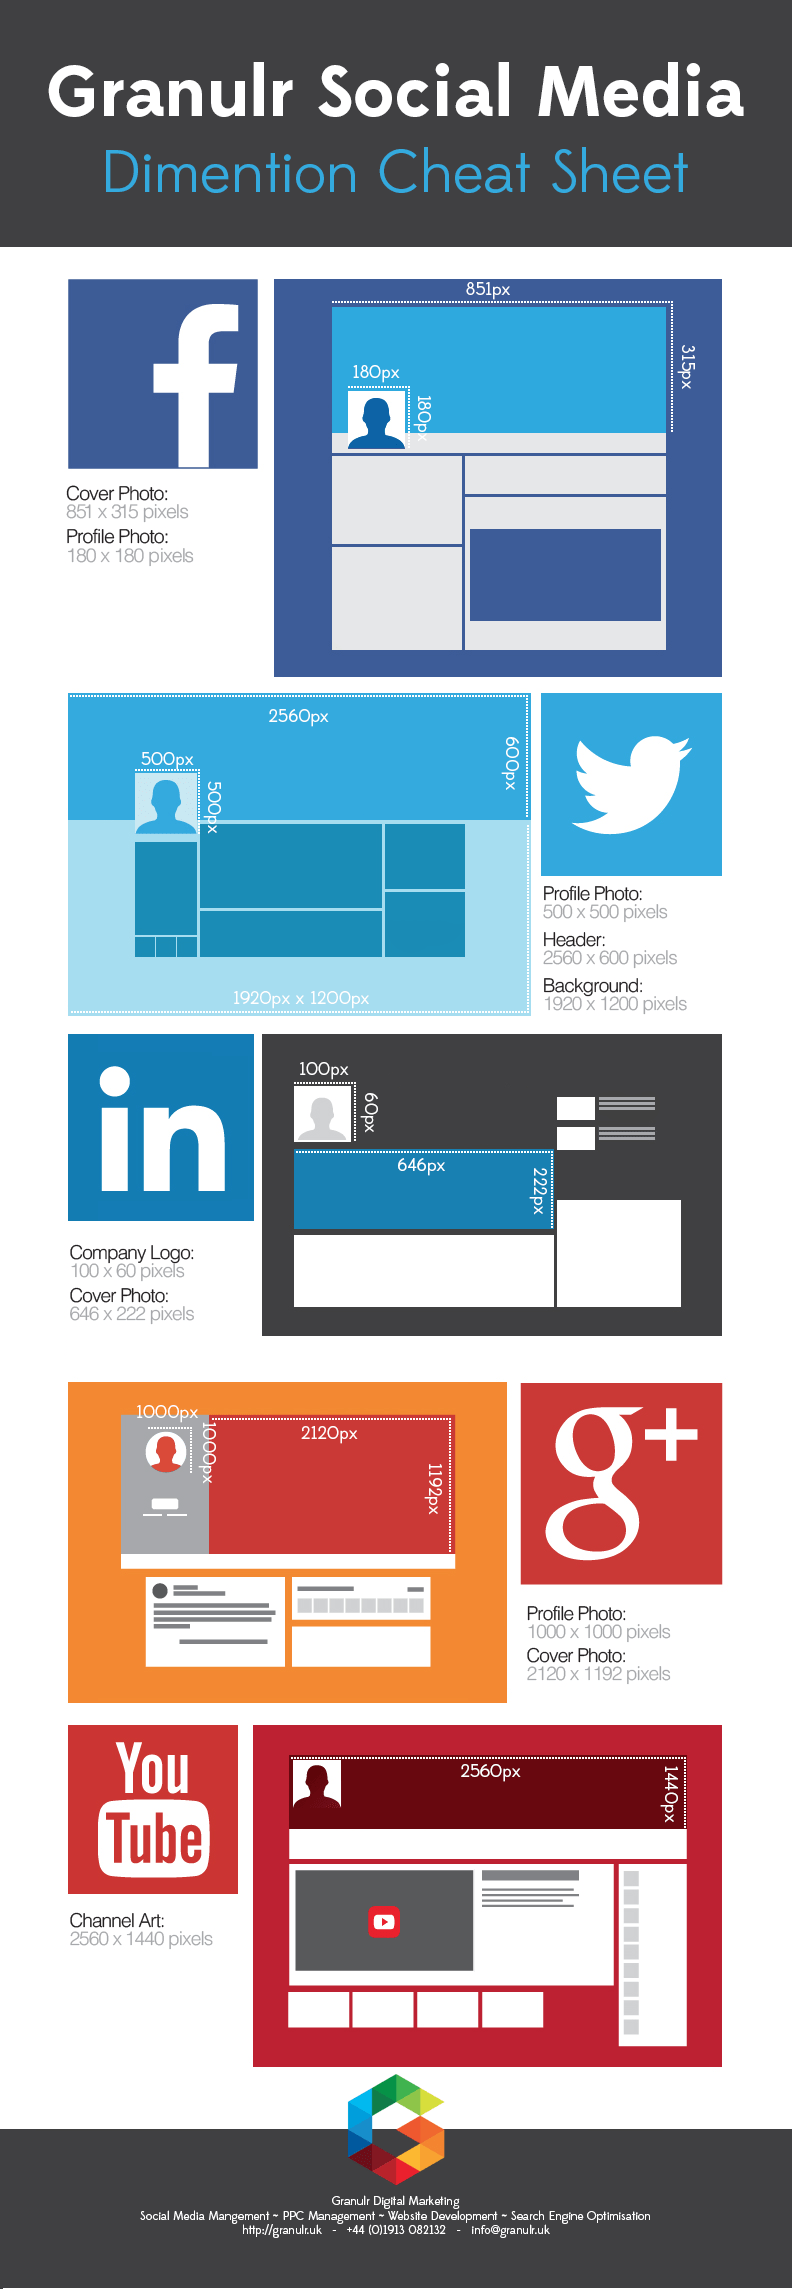 Social Media Image Size Cheat Sheet